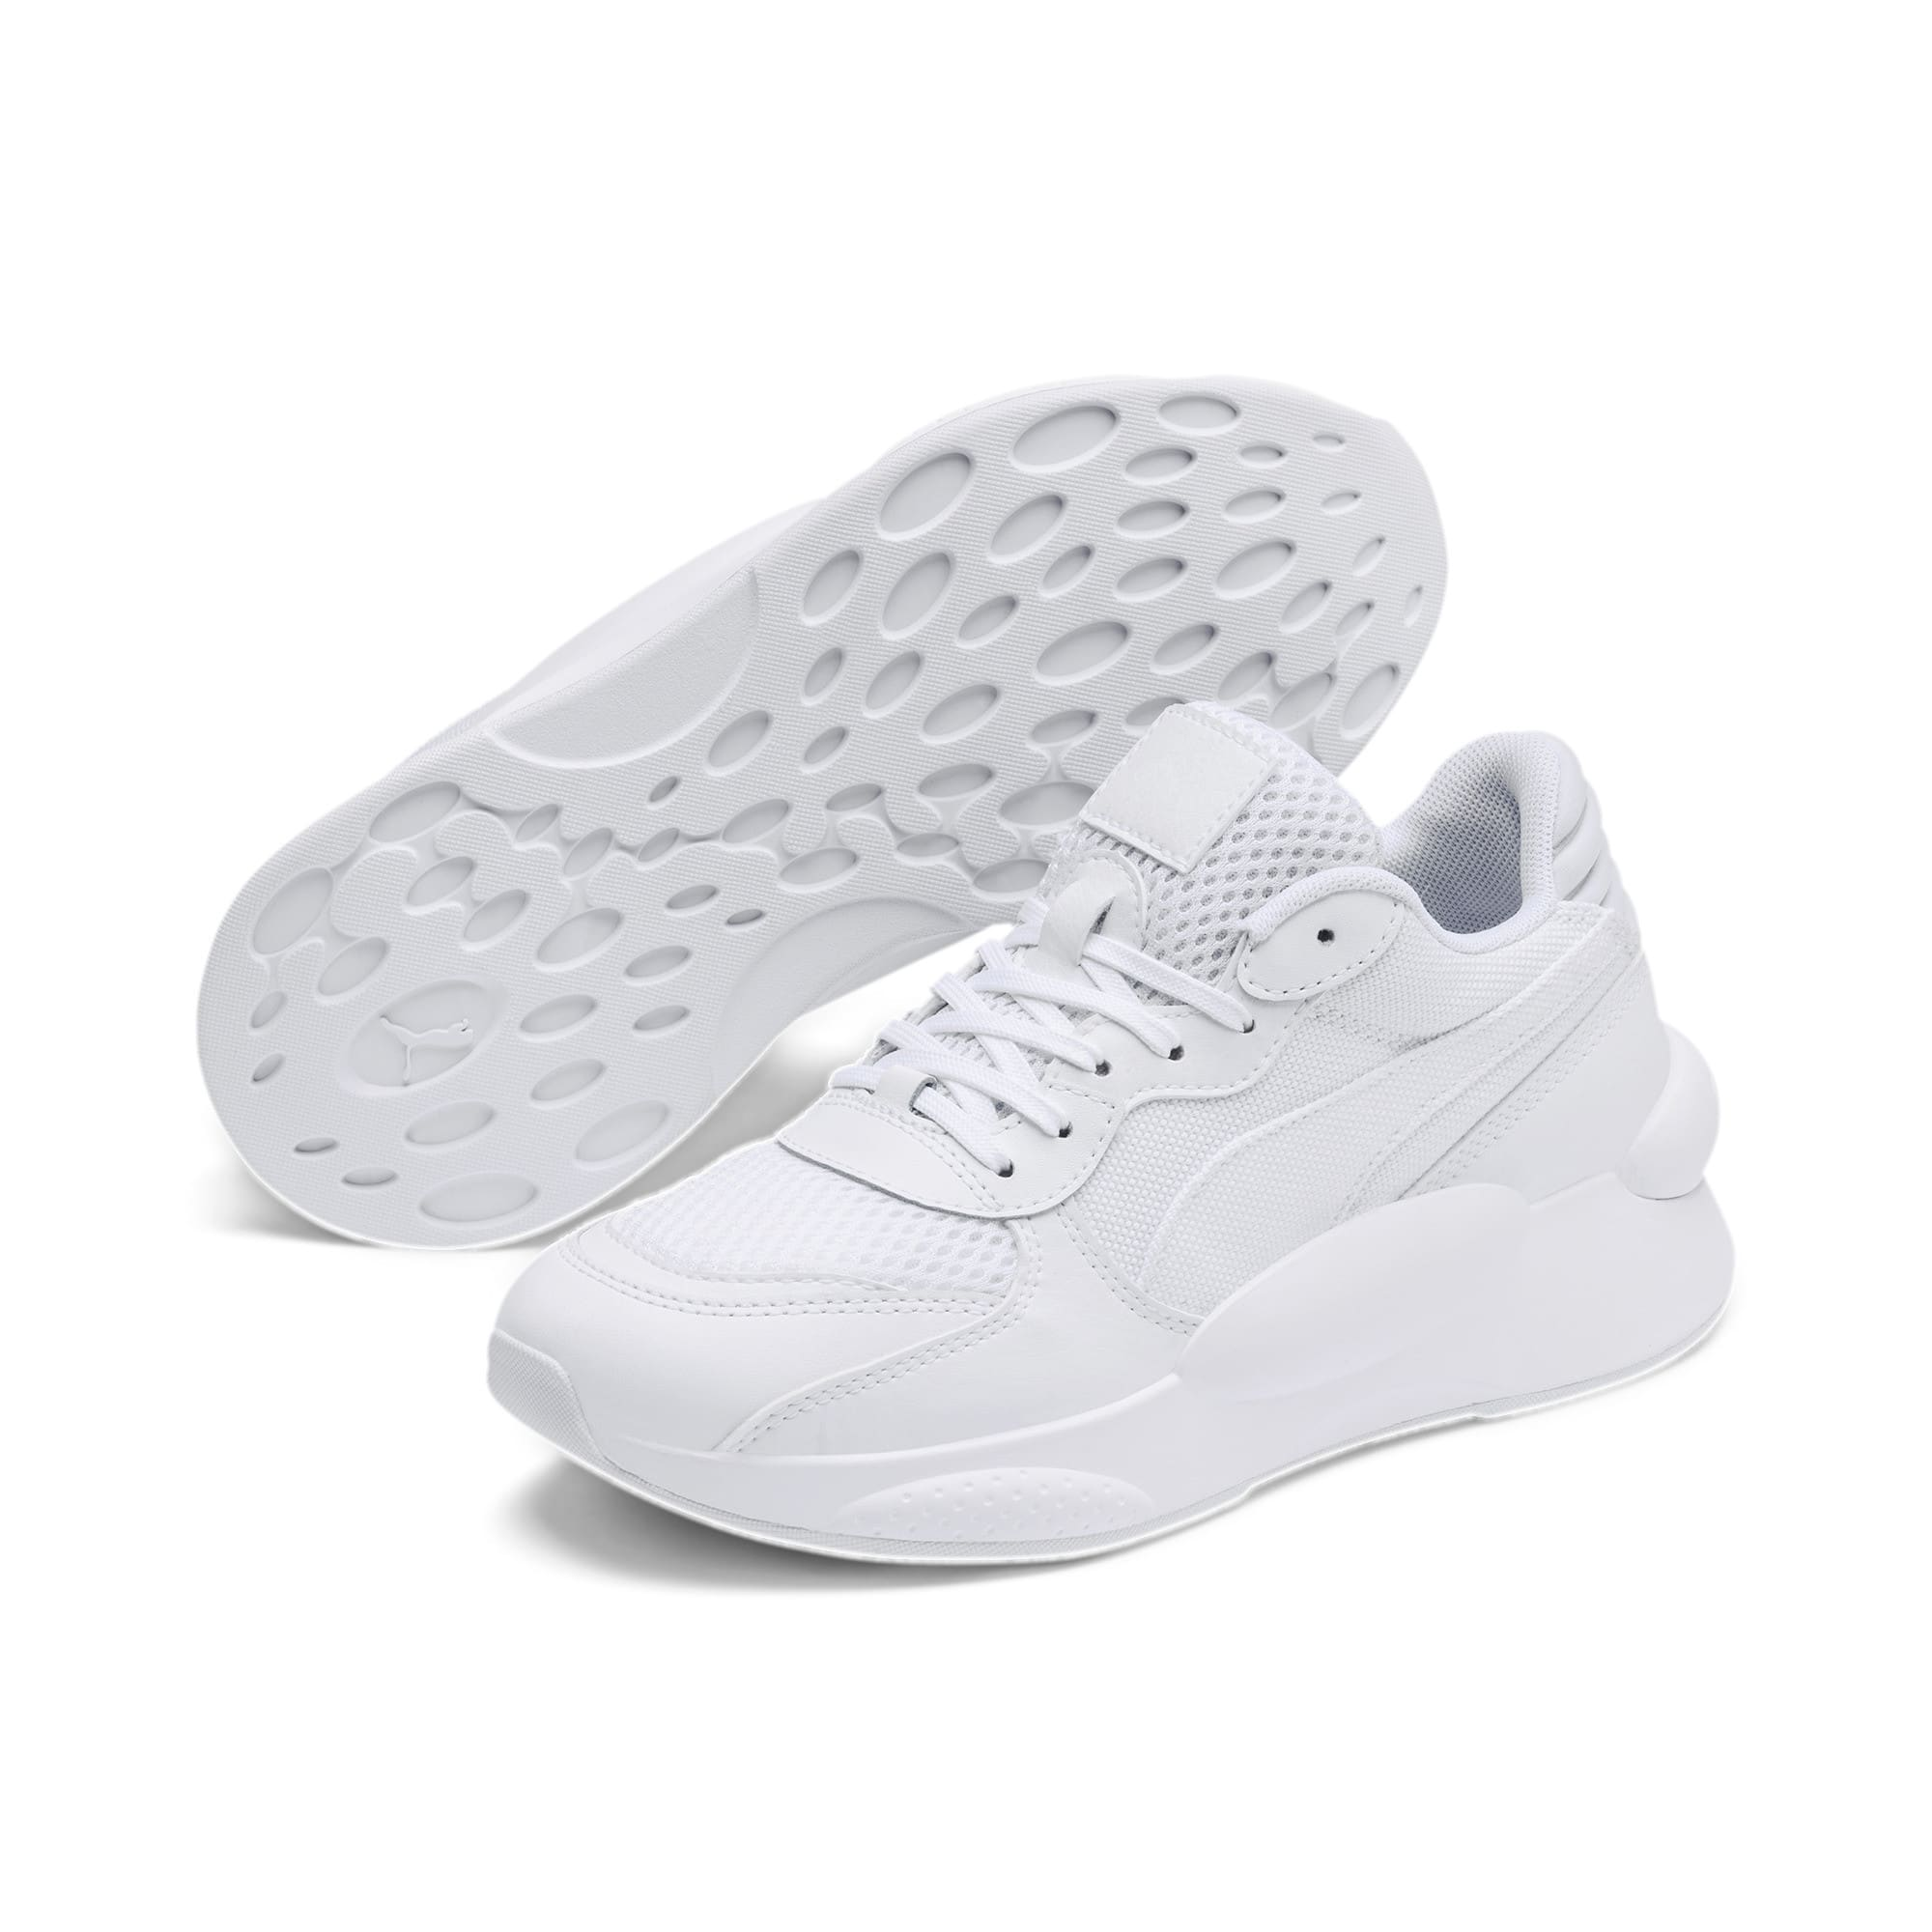 Thumbnail 2 of RS 9.8 Core Sneakers JR, Puma White, medium